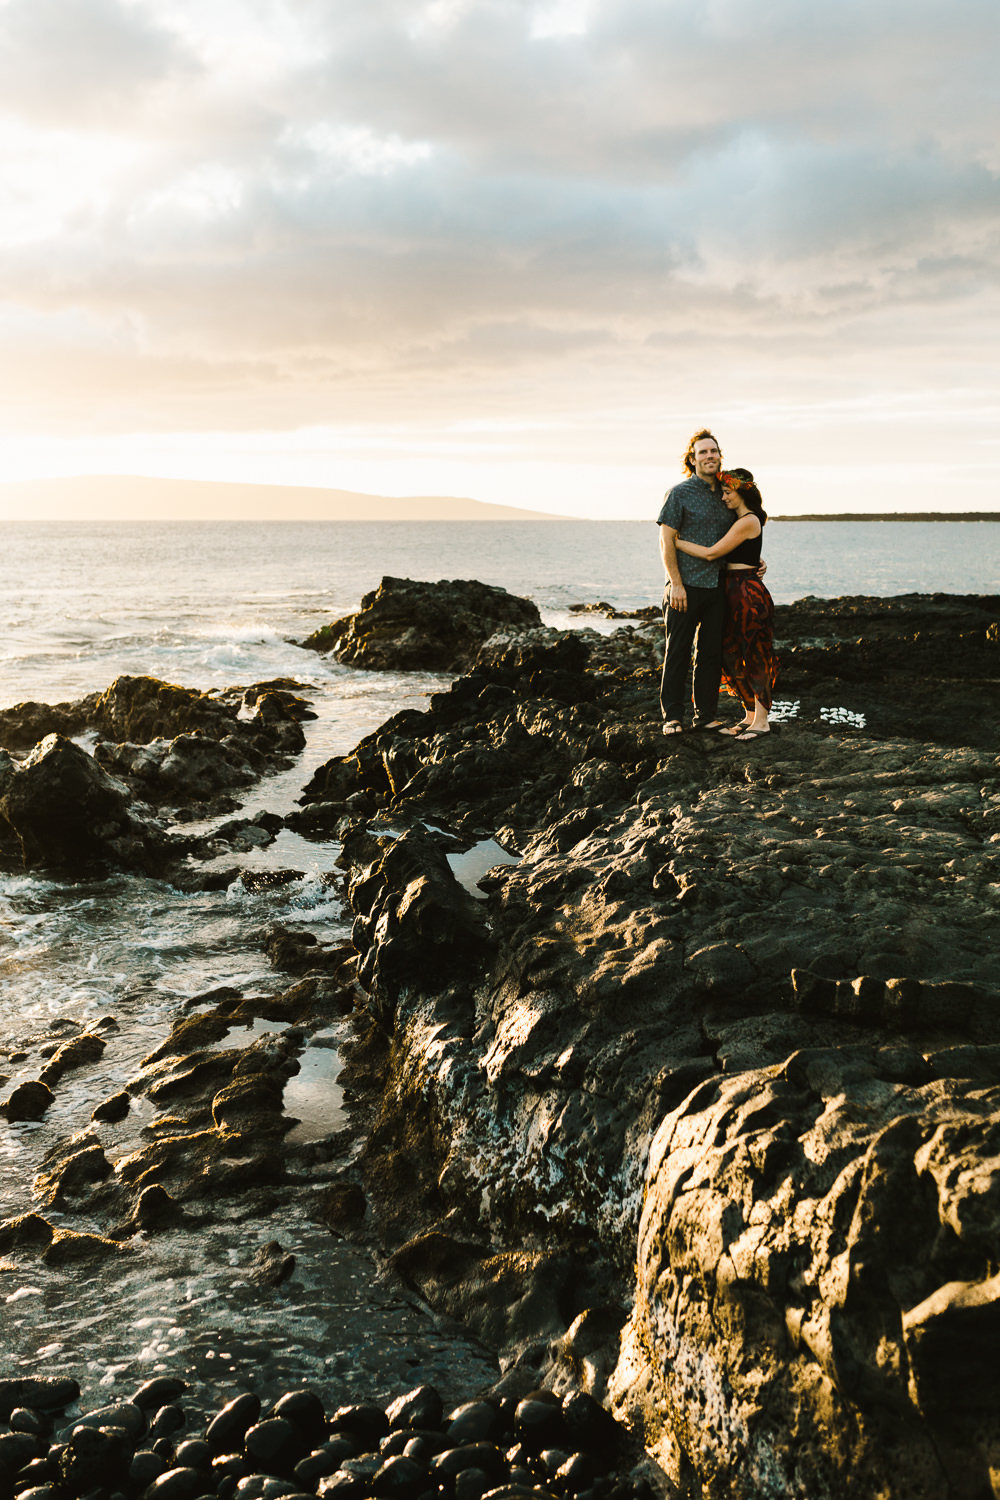 couples_adventure_photos_laperouse_maui-4-1.jpg